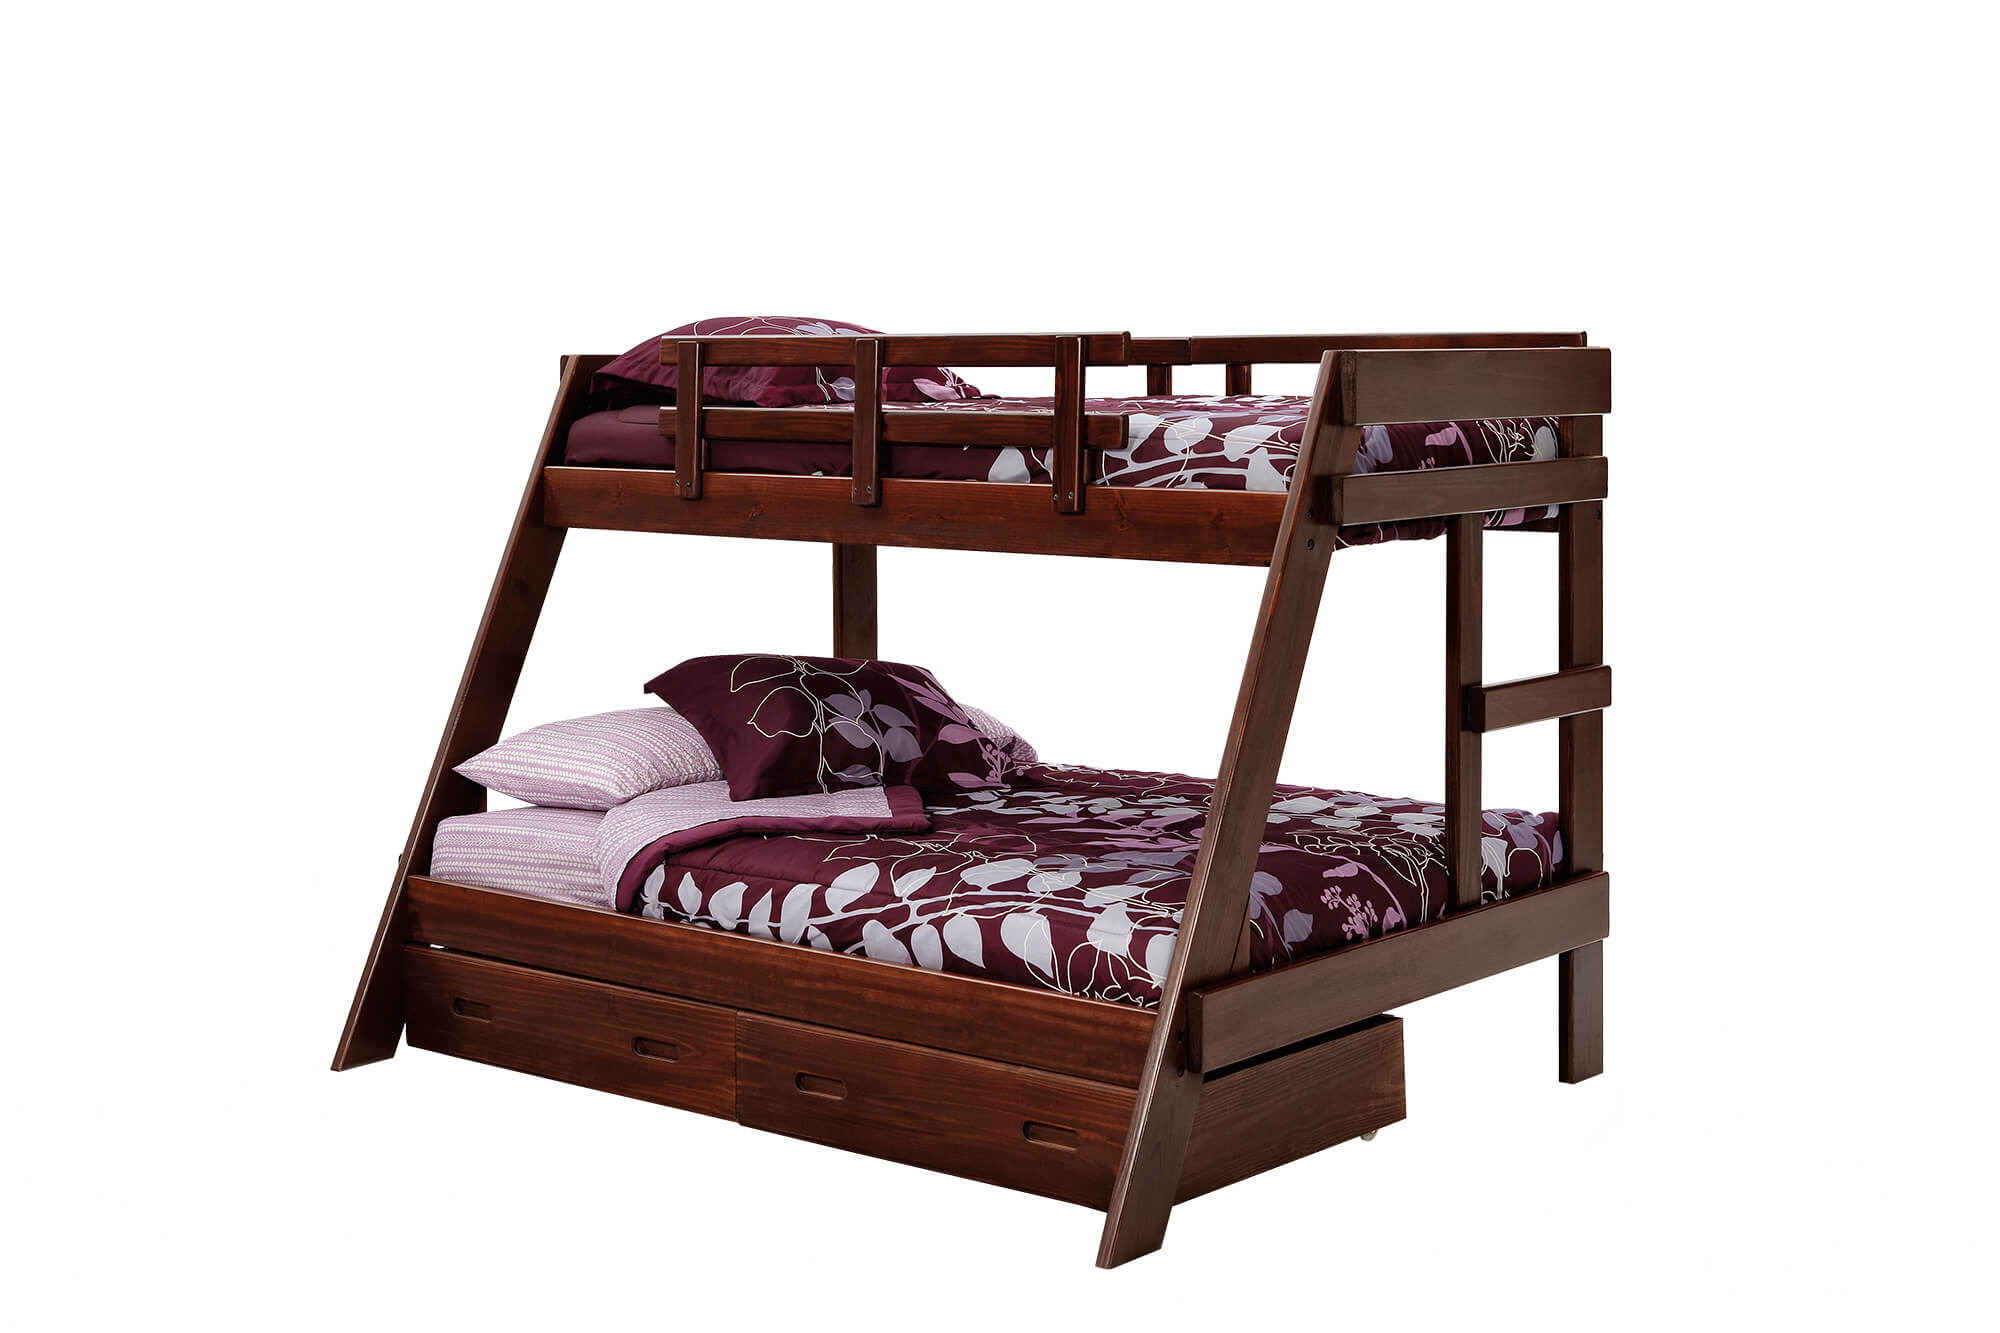 woodcrest rustic brown twin/full bunk bed | kids' bunk beds